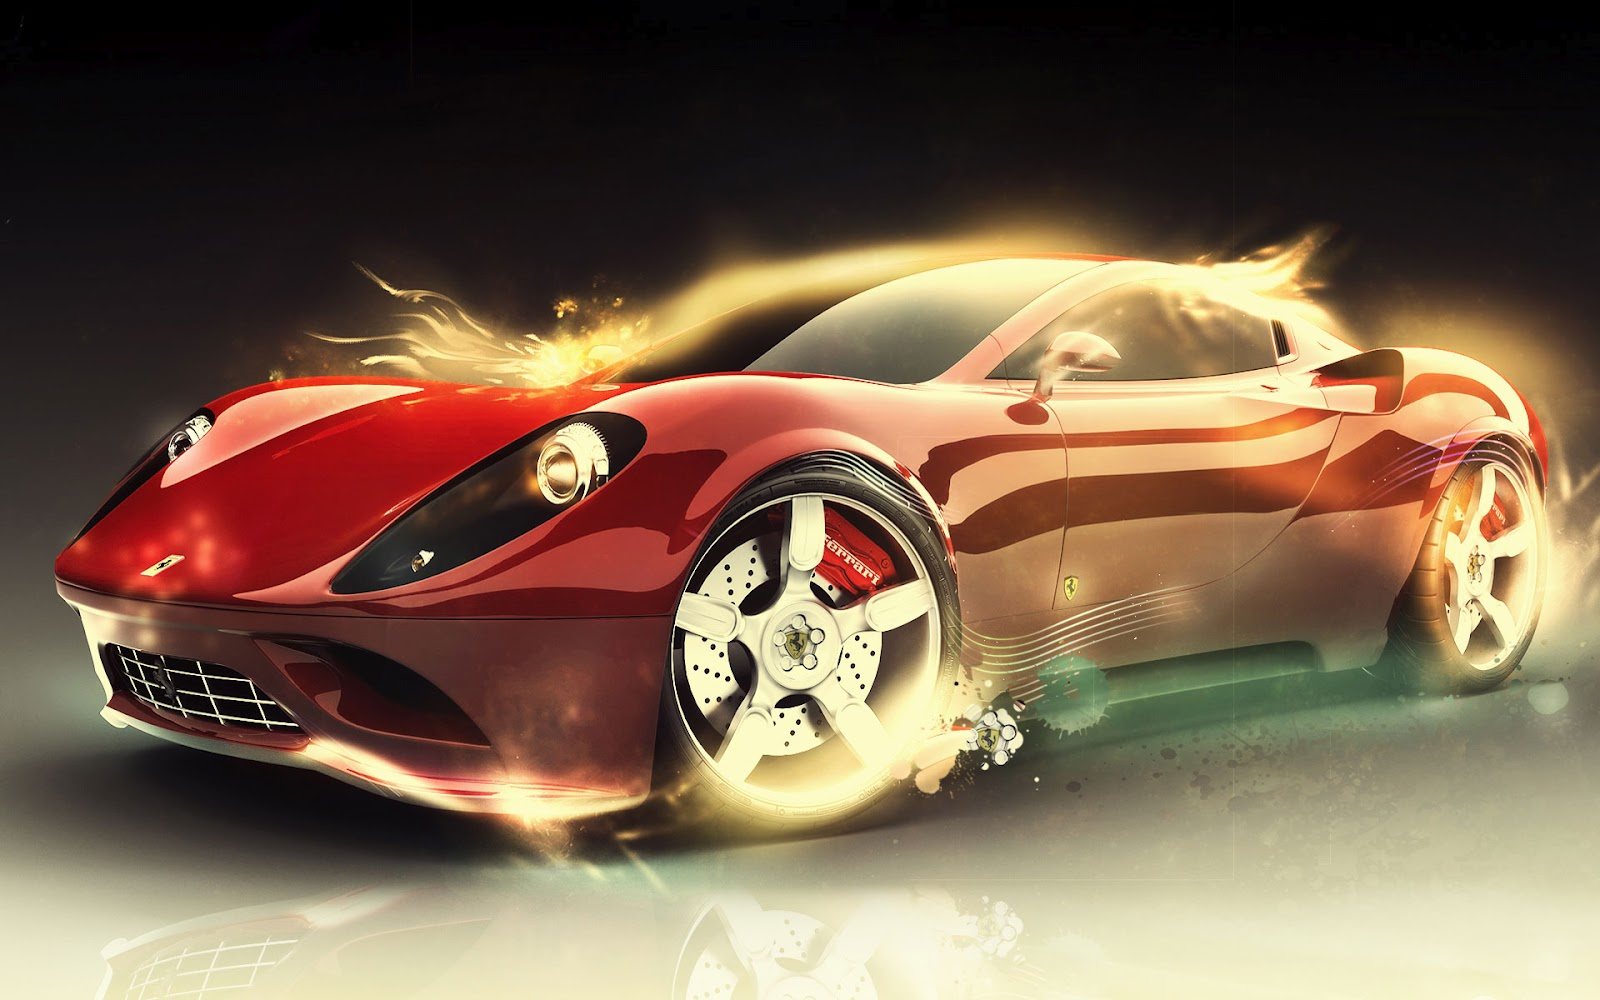 Ferrari Wallpapers 171 FREE WALLPAPERS 1600x1000